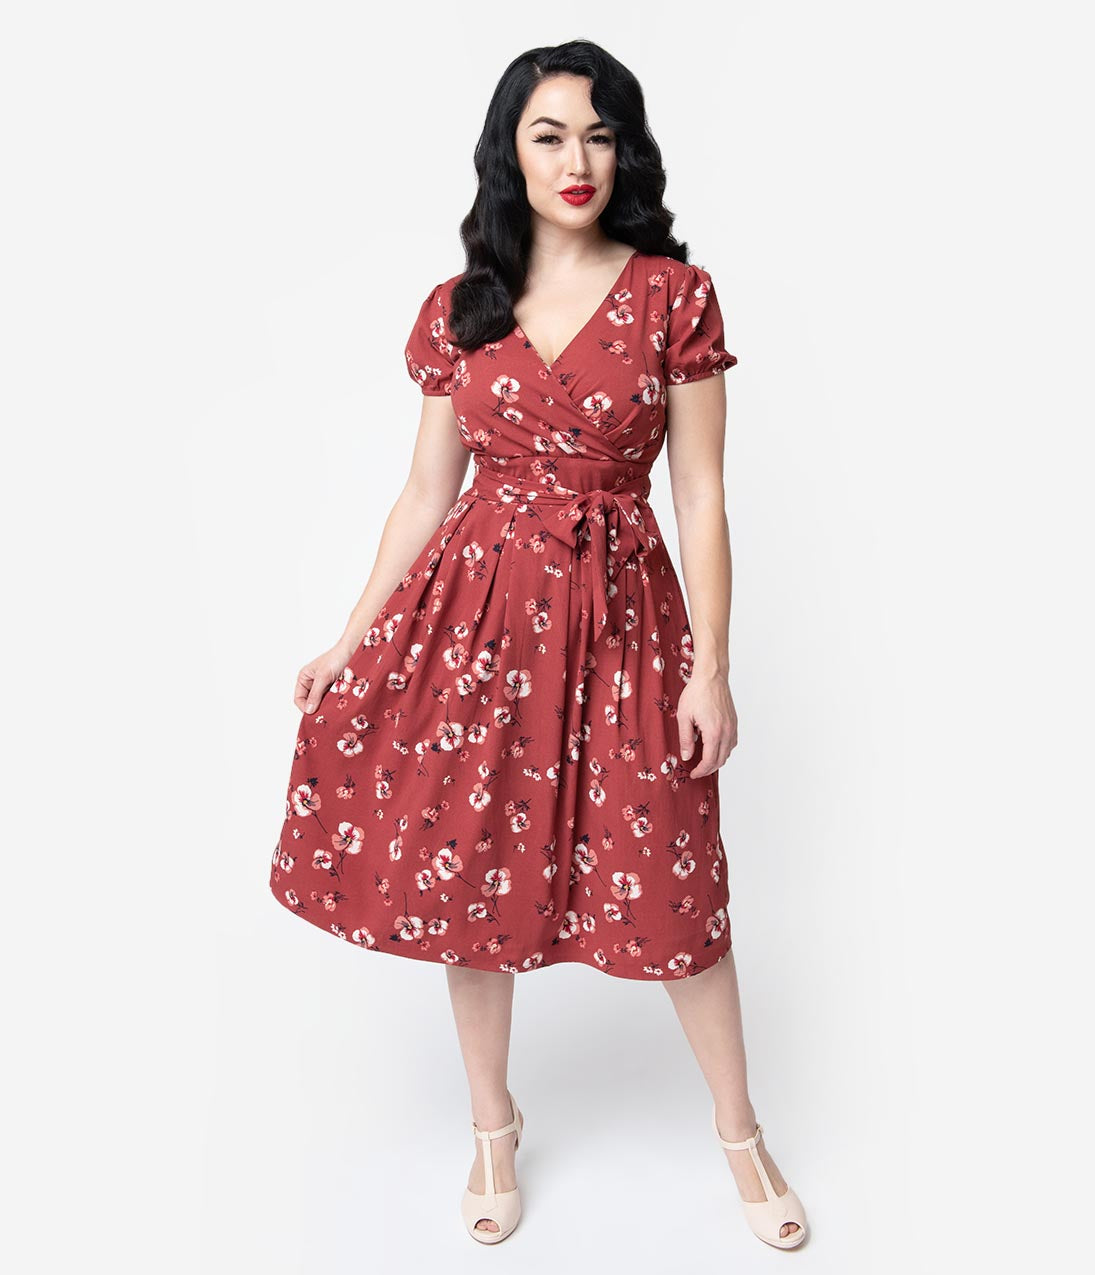 1940s Dresses | 40s Dress, Swing Dress 1940S Style Dark Pink Floral Short Sleeve Katelyn Midi Dress $68.00 AT vintagedancer.com